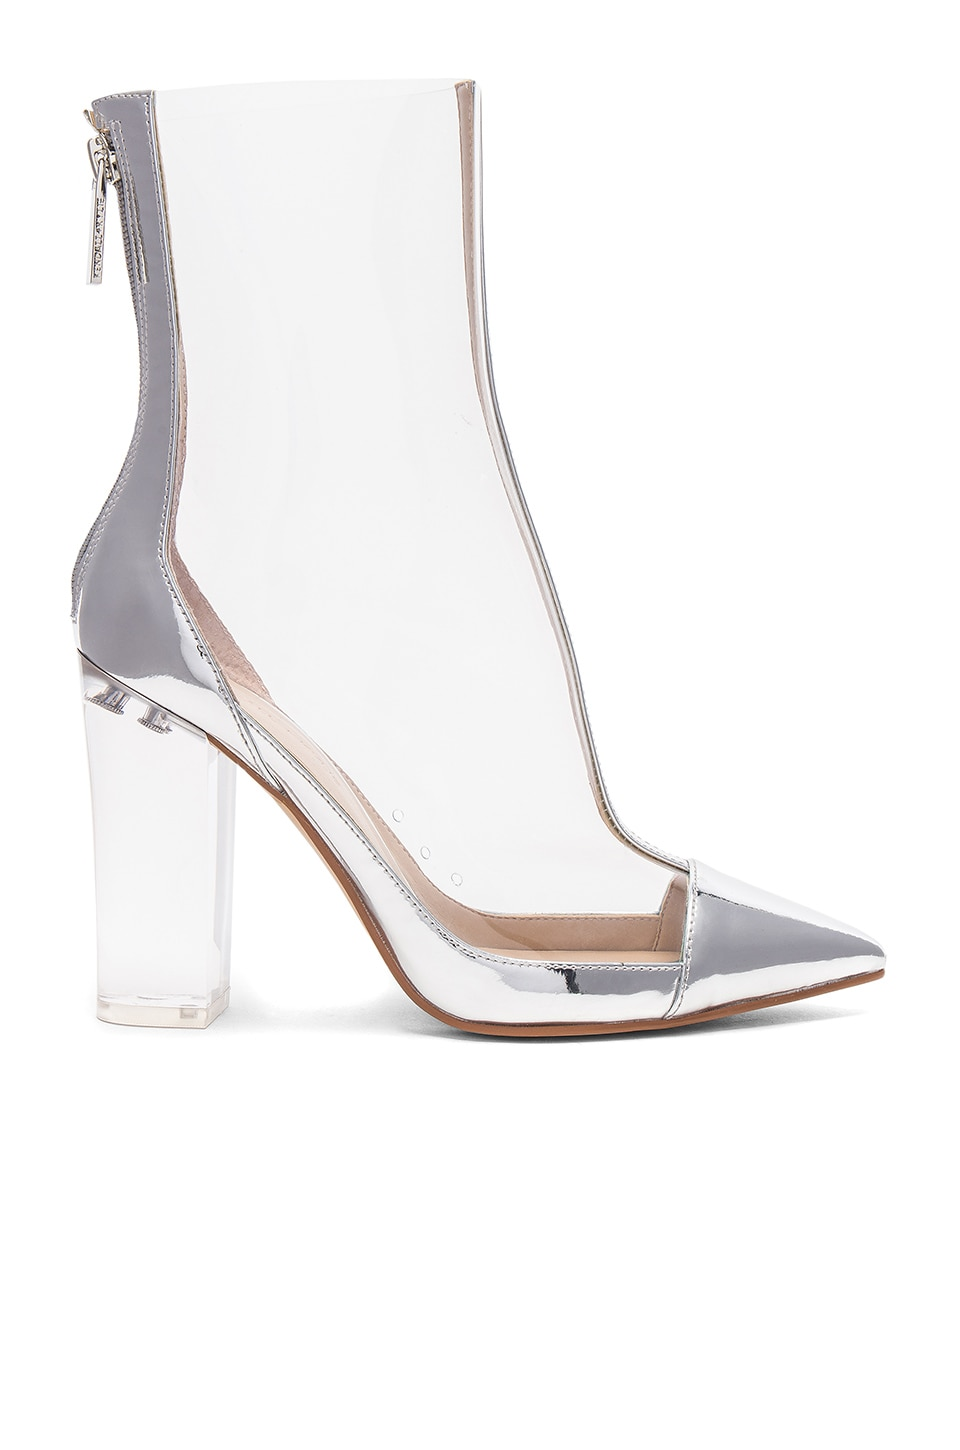 KENDALL + KYLIE Haven Bootie in Silver